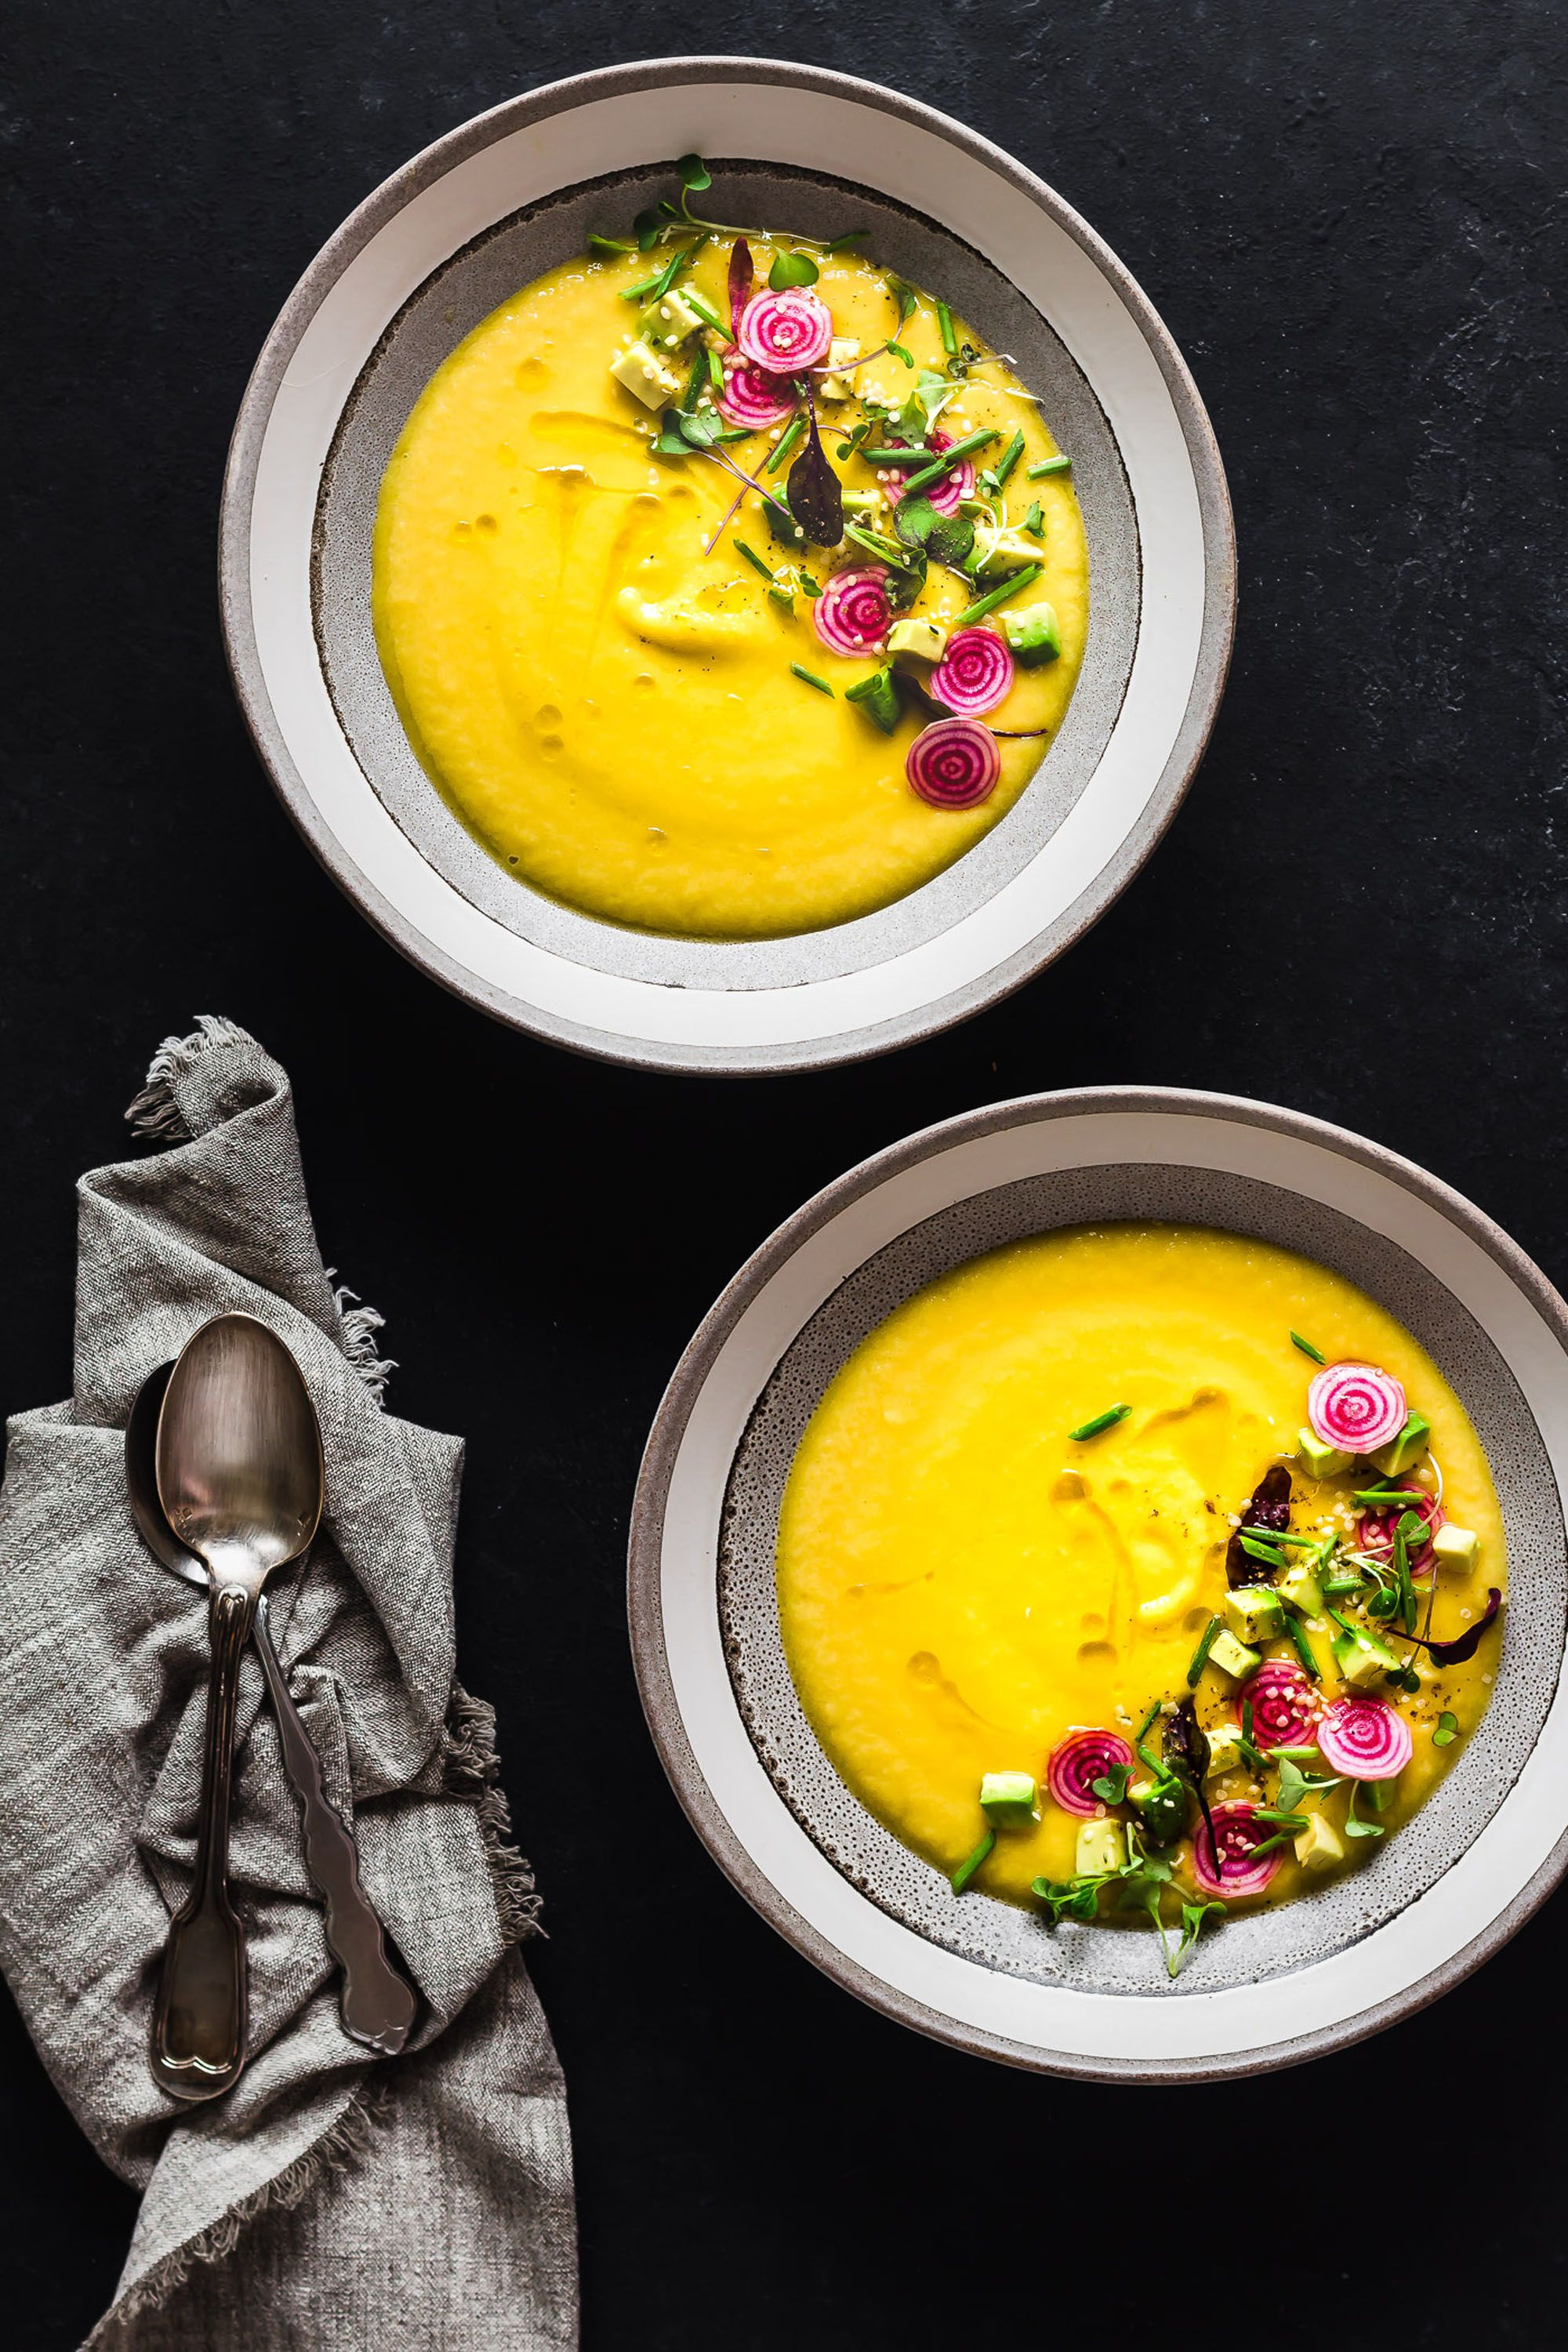 40 Cold Soups And Gazpacho Recipes Gazpacho And Cold Soup Ideas